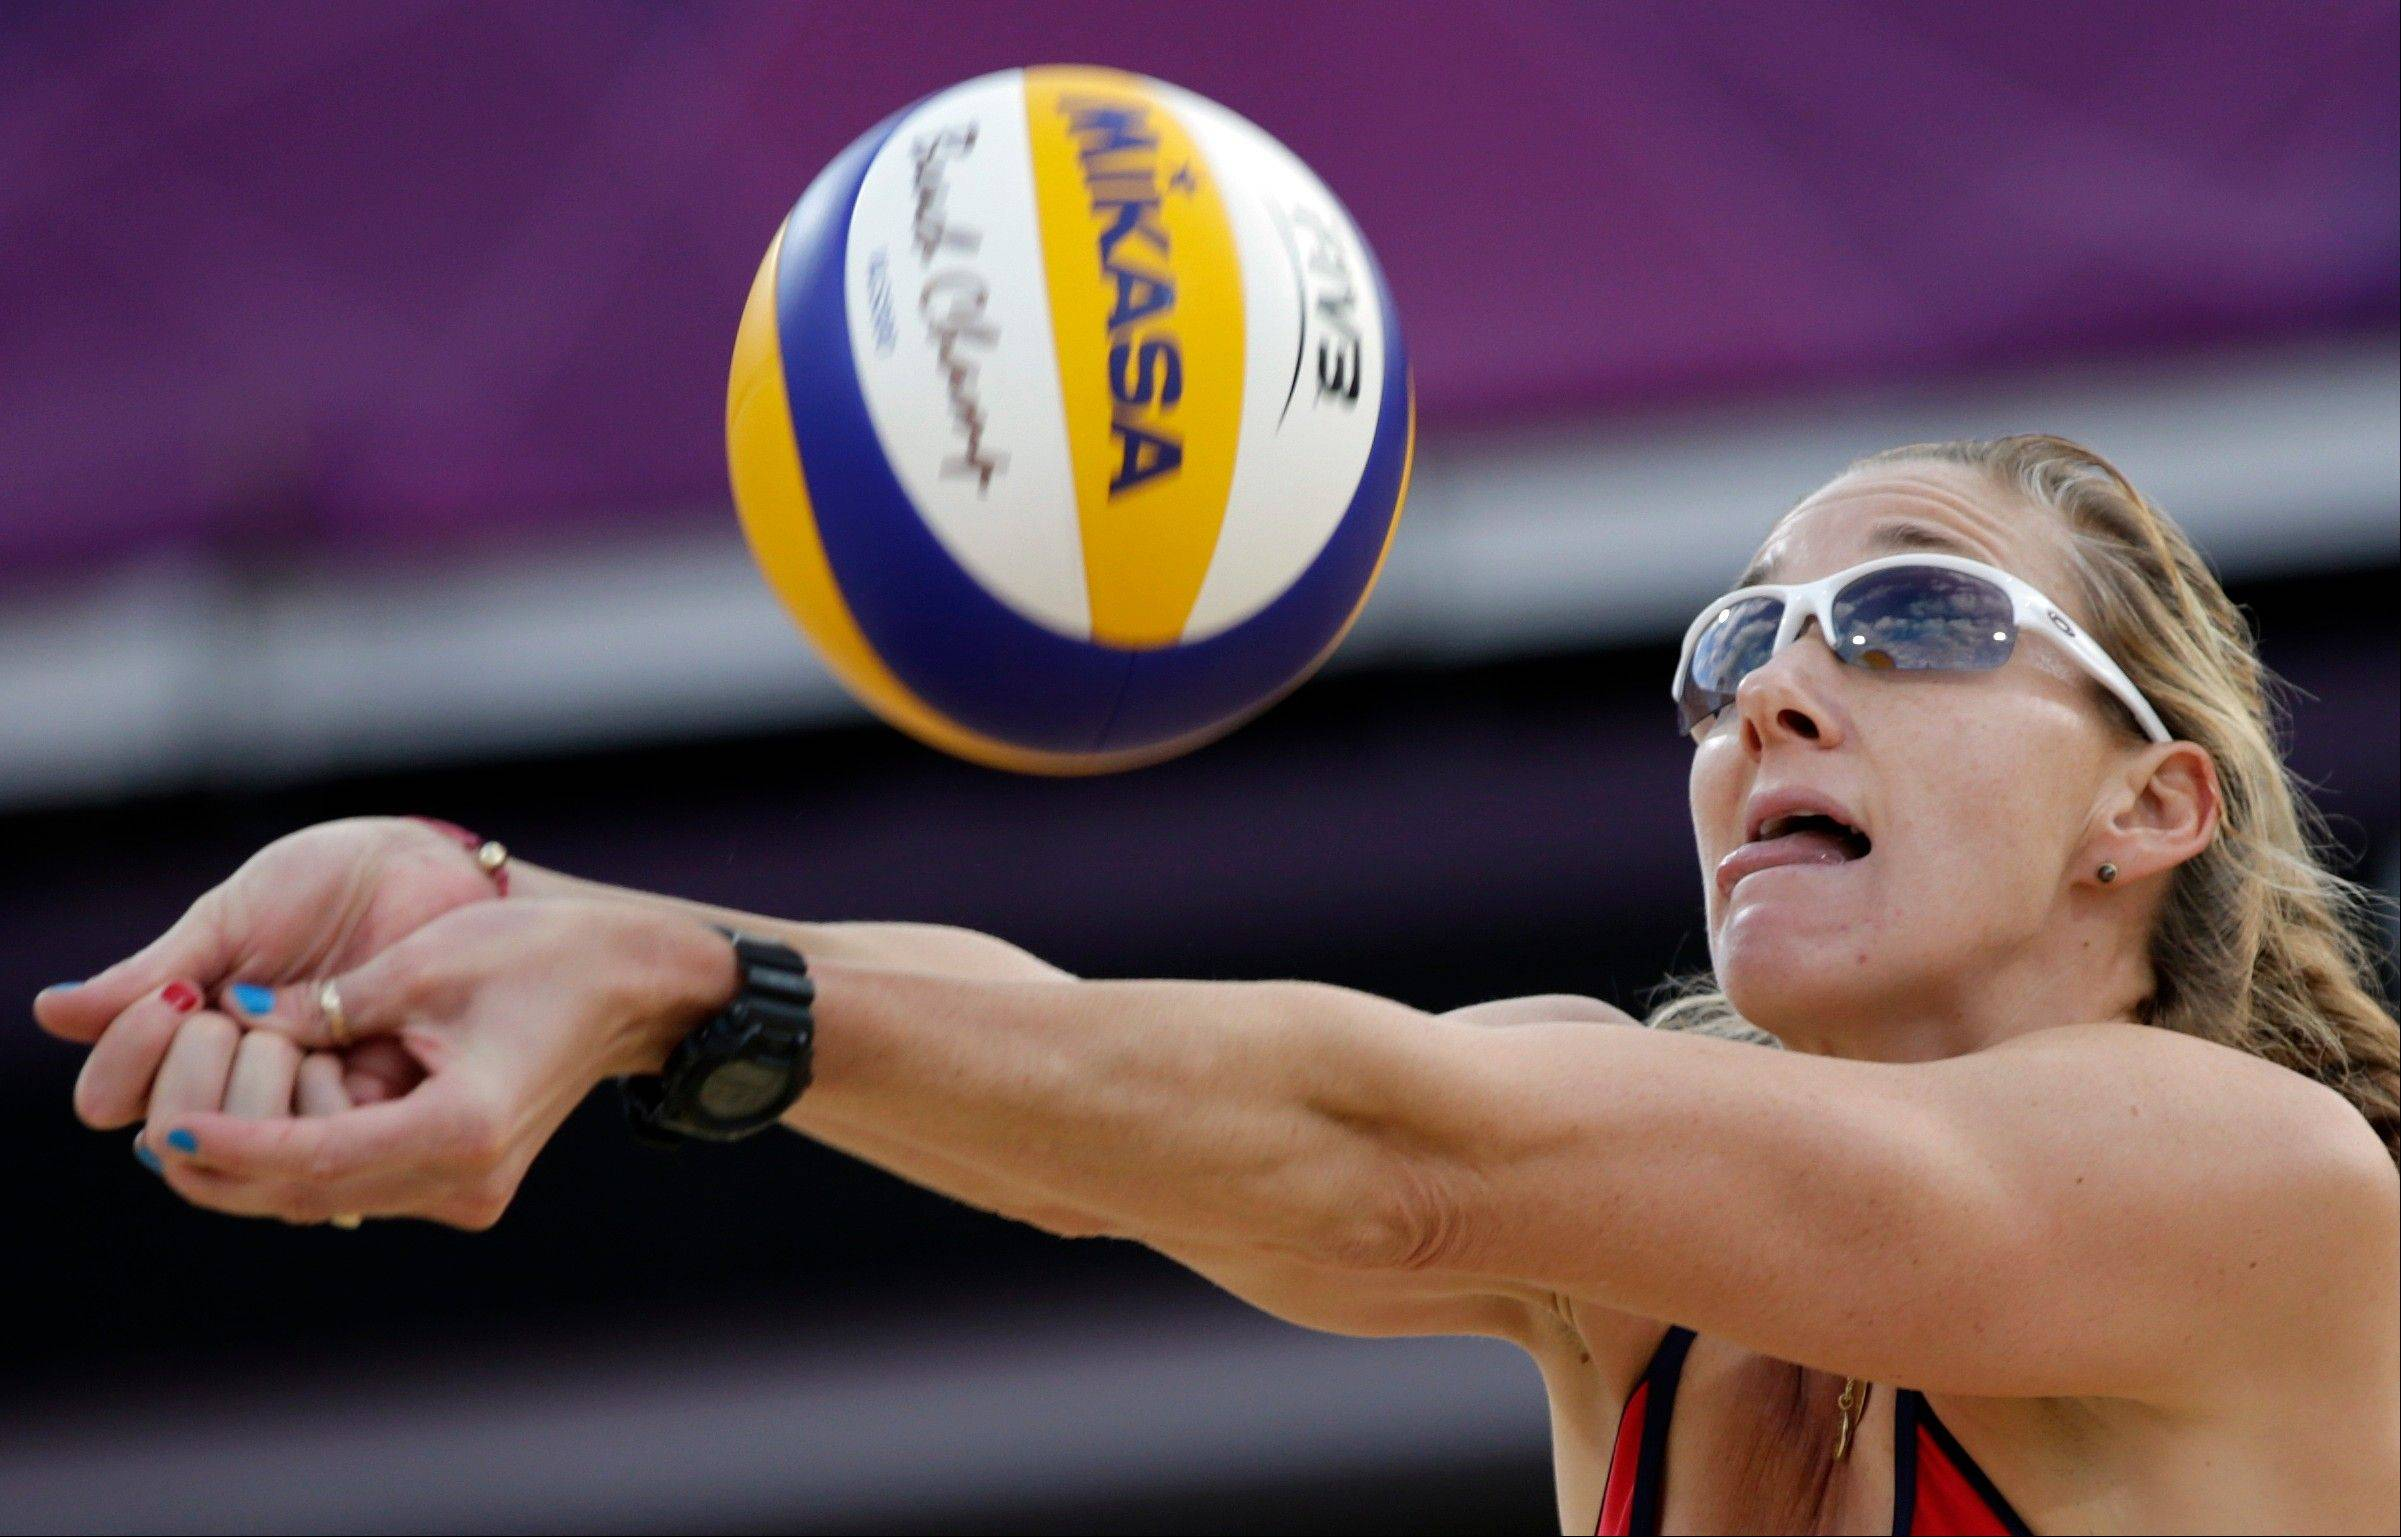 Kerri Walsh of the United States sets the ball during a beach volleyball match against Italy at the 2012 Summer Olympics, Sunday, Aug. 5, 2012, in London.